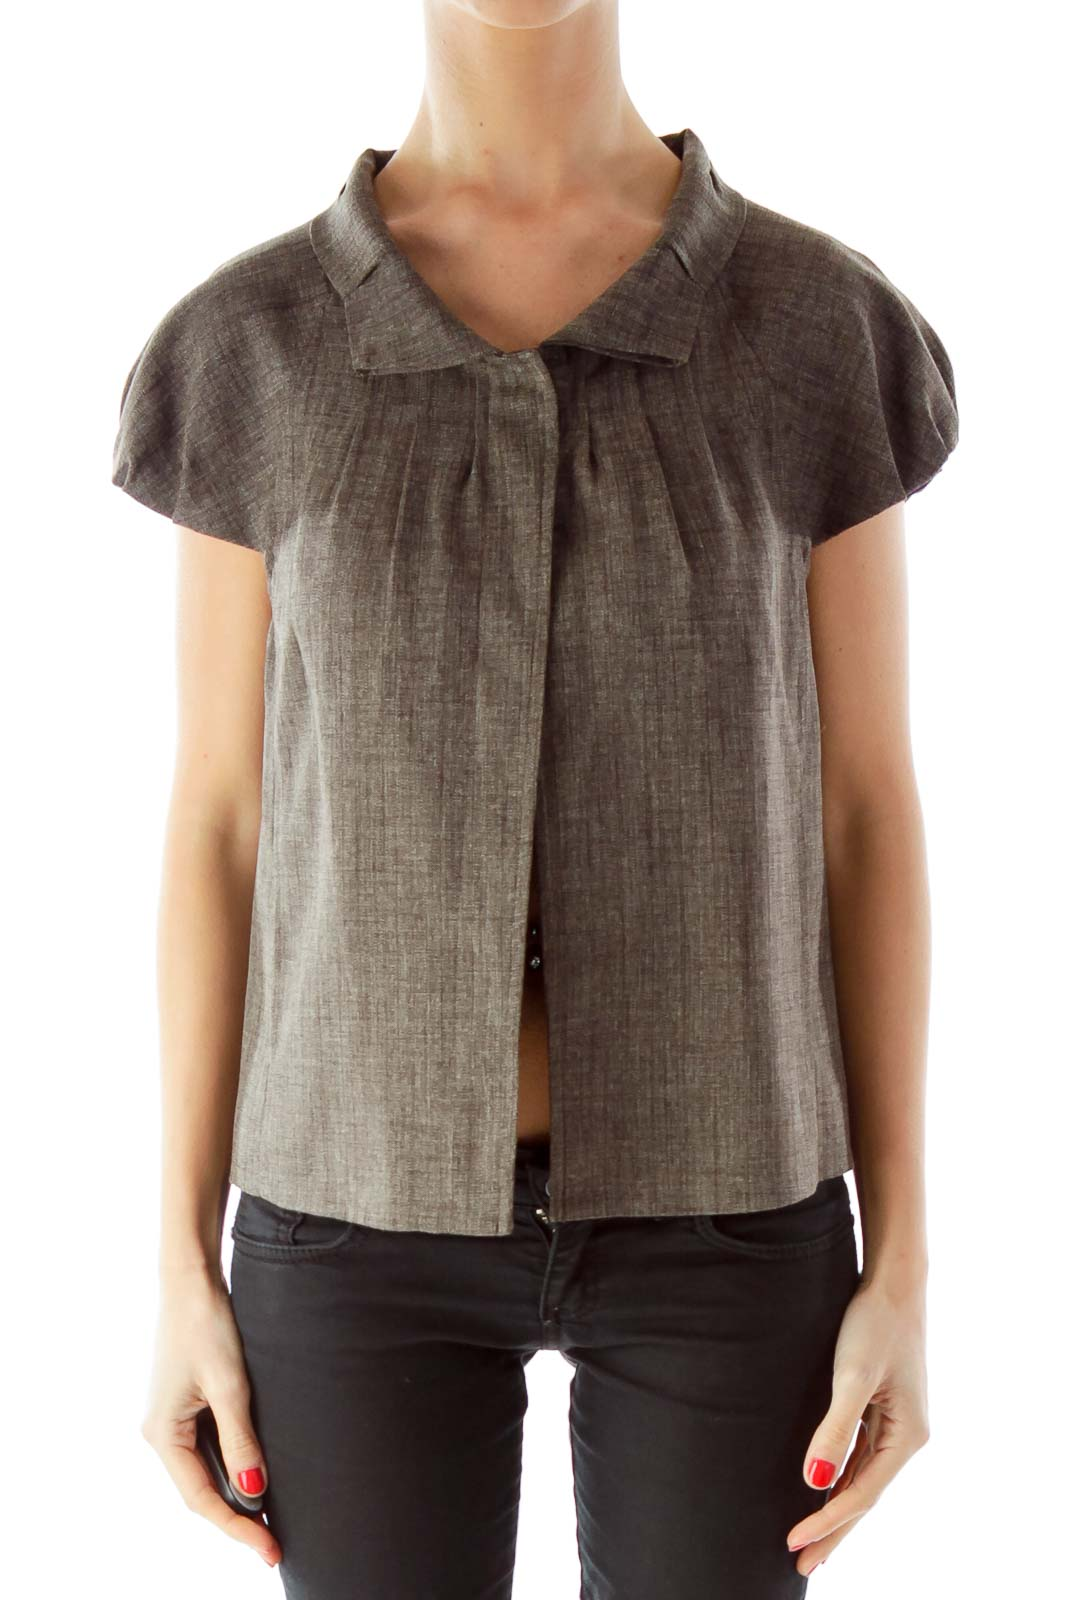 Gray Buttoned Ruffled Short Sleeve Jacket Front